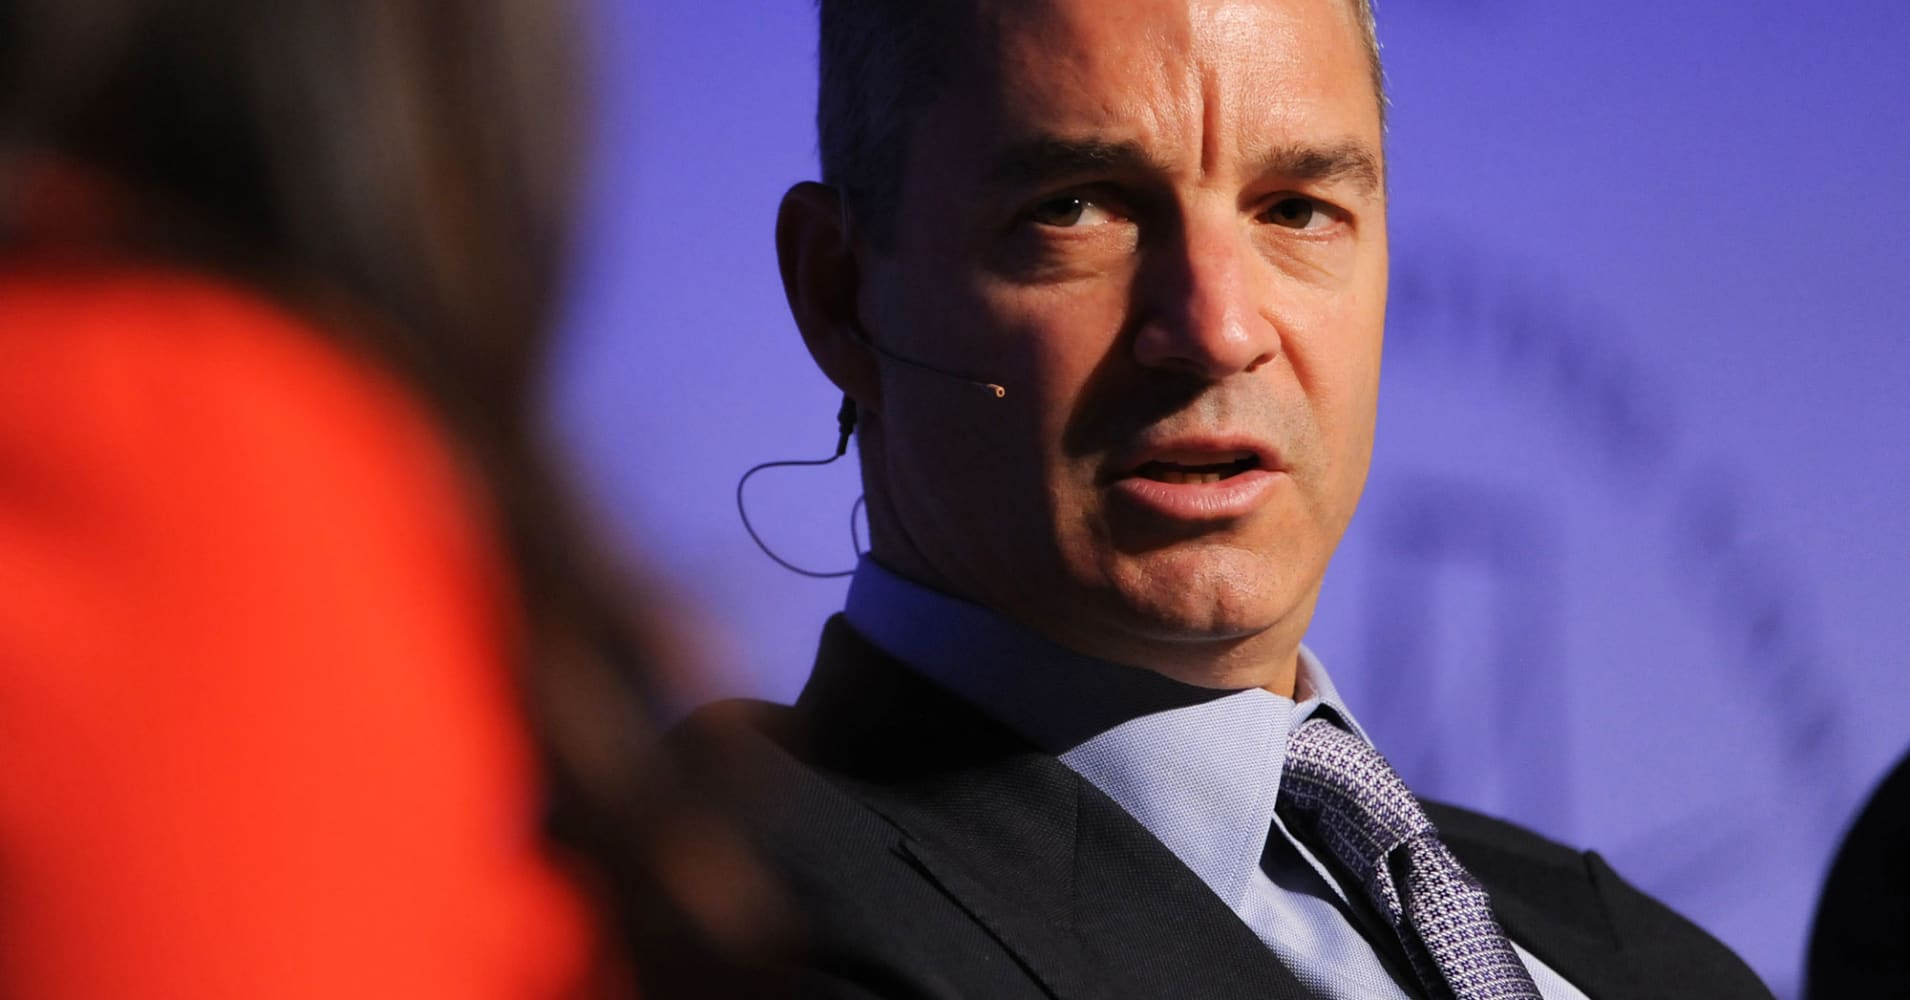 Activist Dan Loeb says Dow-DuPont merger plan may leave $20 billion on the table